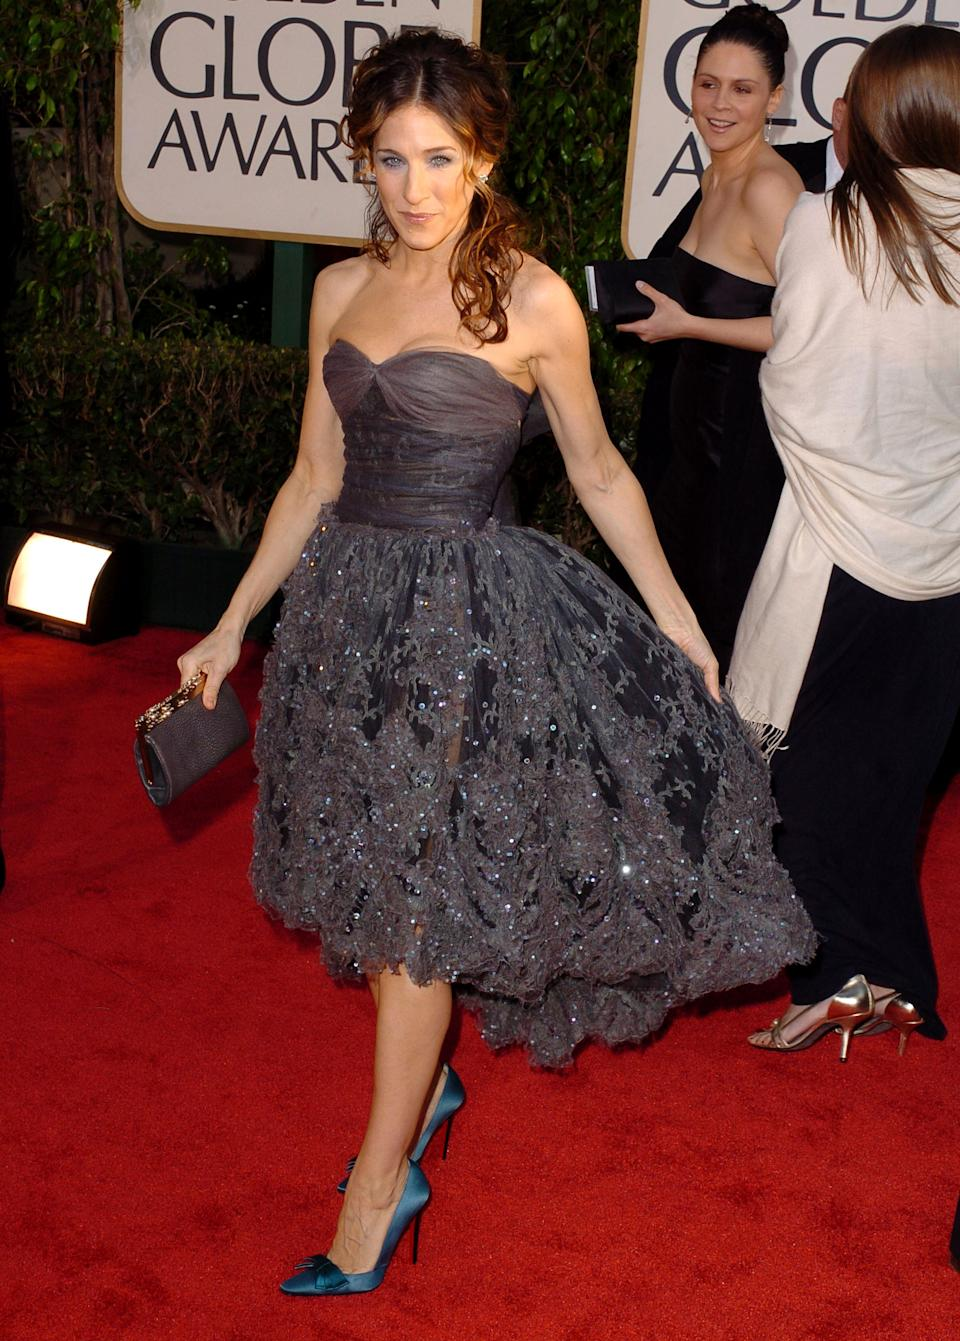 <p>It's because of dresses like this that we're so glad high-low hem trend is no longer in style. They should have never been. Thankfully, we can all learn from Sarah Jessica Parker and Chanel's mistake.</p>